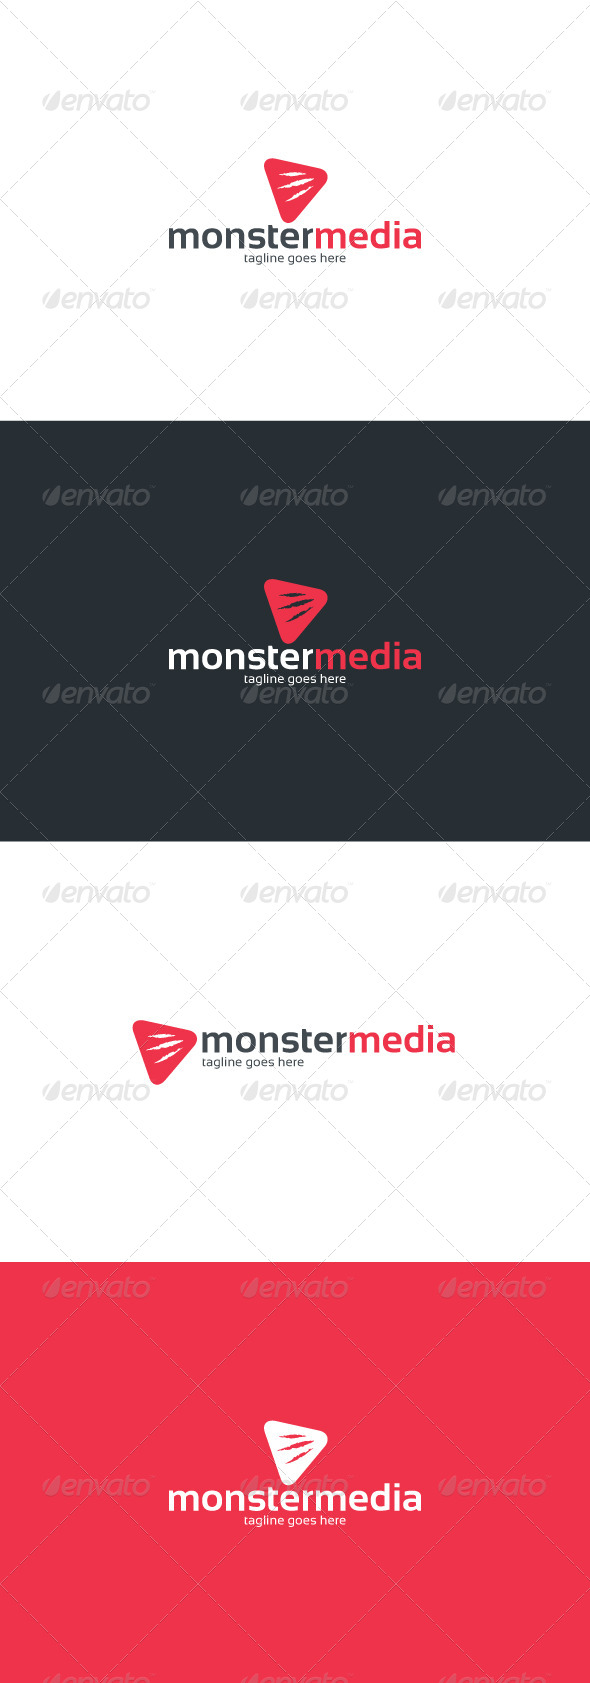 GraphicRiver Monster Media Logo 8498645